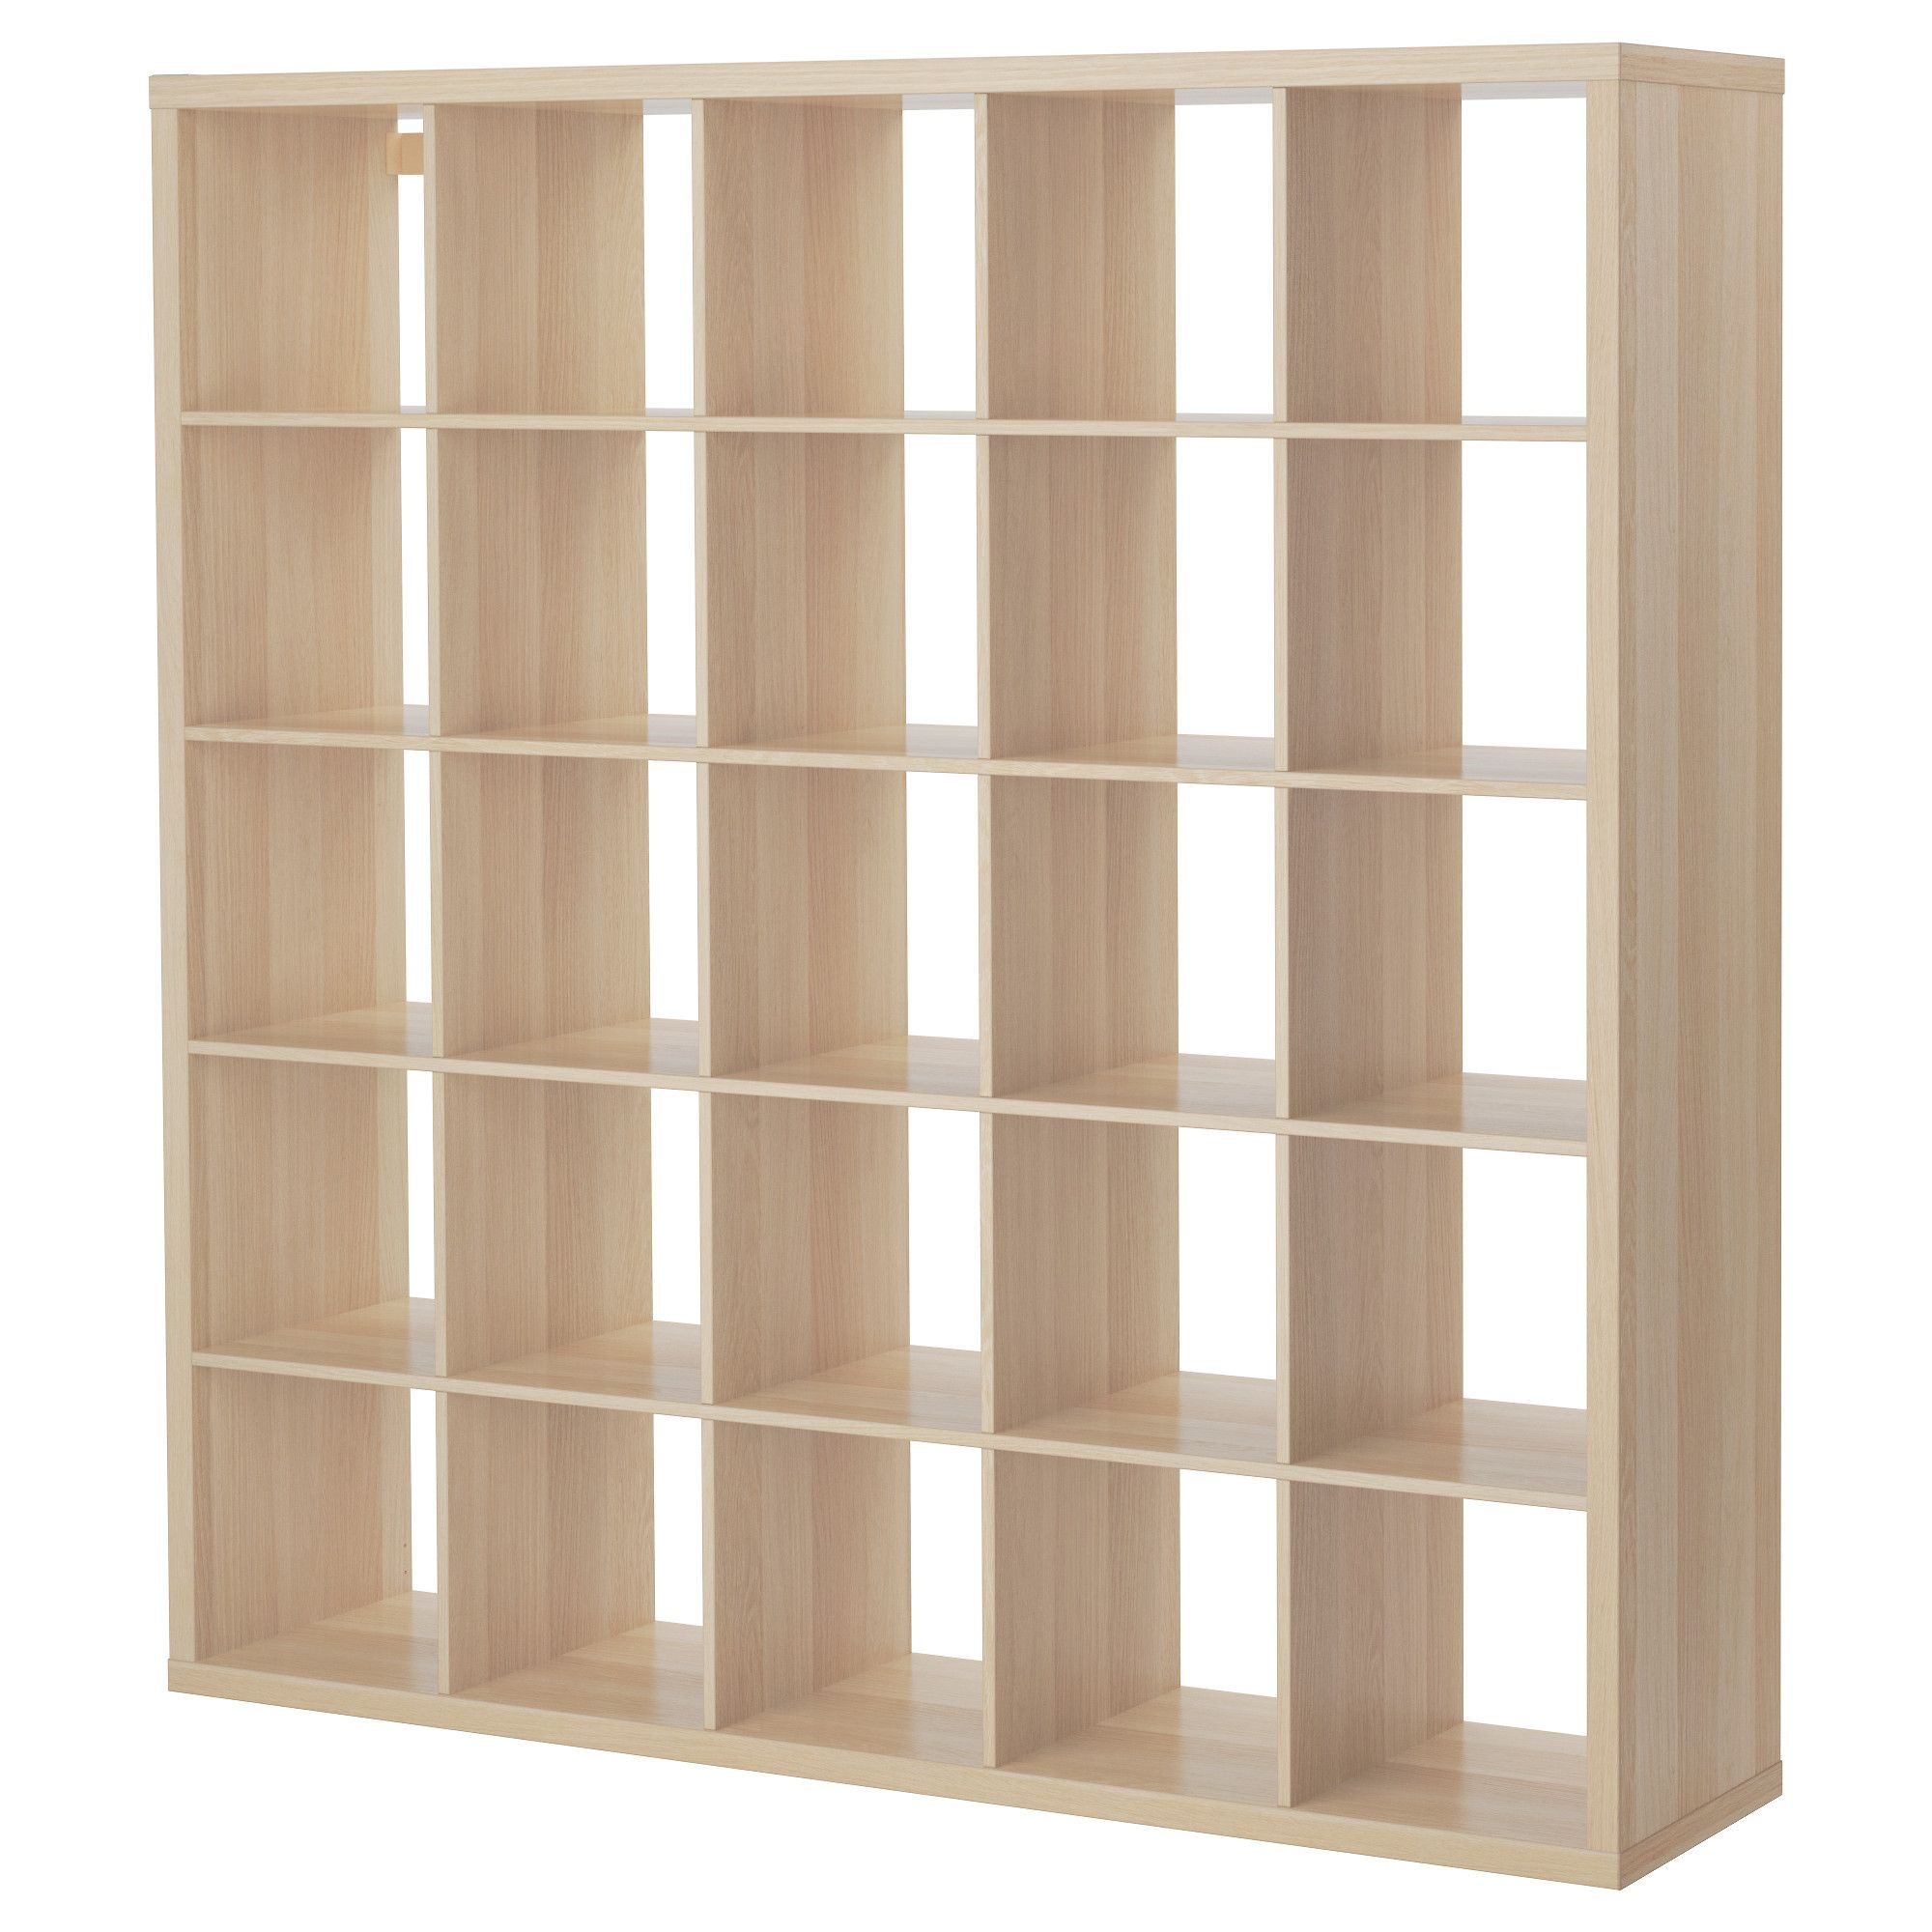 Kallax Shelving Unit White Stained Oak Effect 182x182 Cm Avec